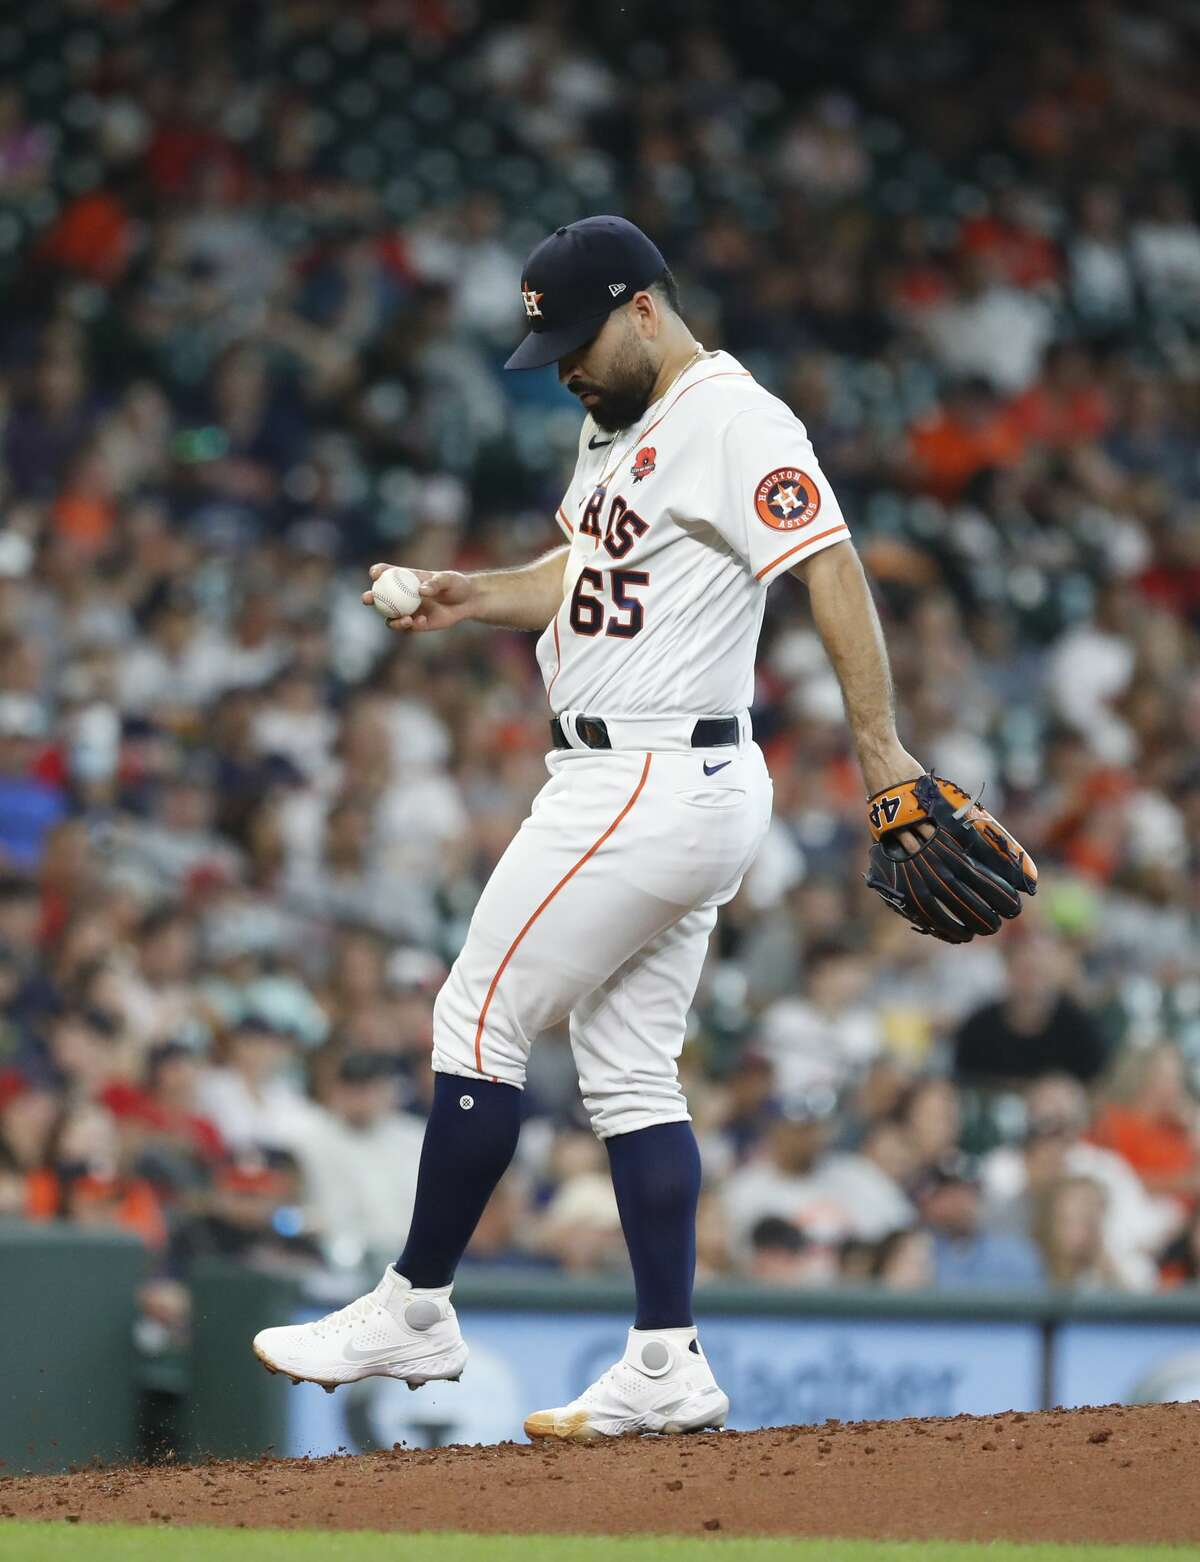 Houston Astros starting pitcher Jose Urquidy (65) reacts after giving up the first hit of the game, a double, to Boston Red Sox Christian Vazquez during the fifth inning of an MLB baseball game at Minute Maid Park, Monday, May 31, 2021, in Houston.